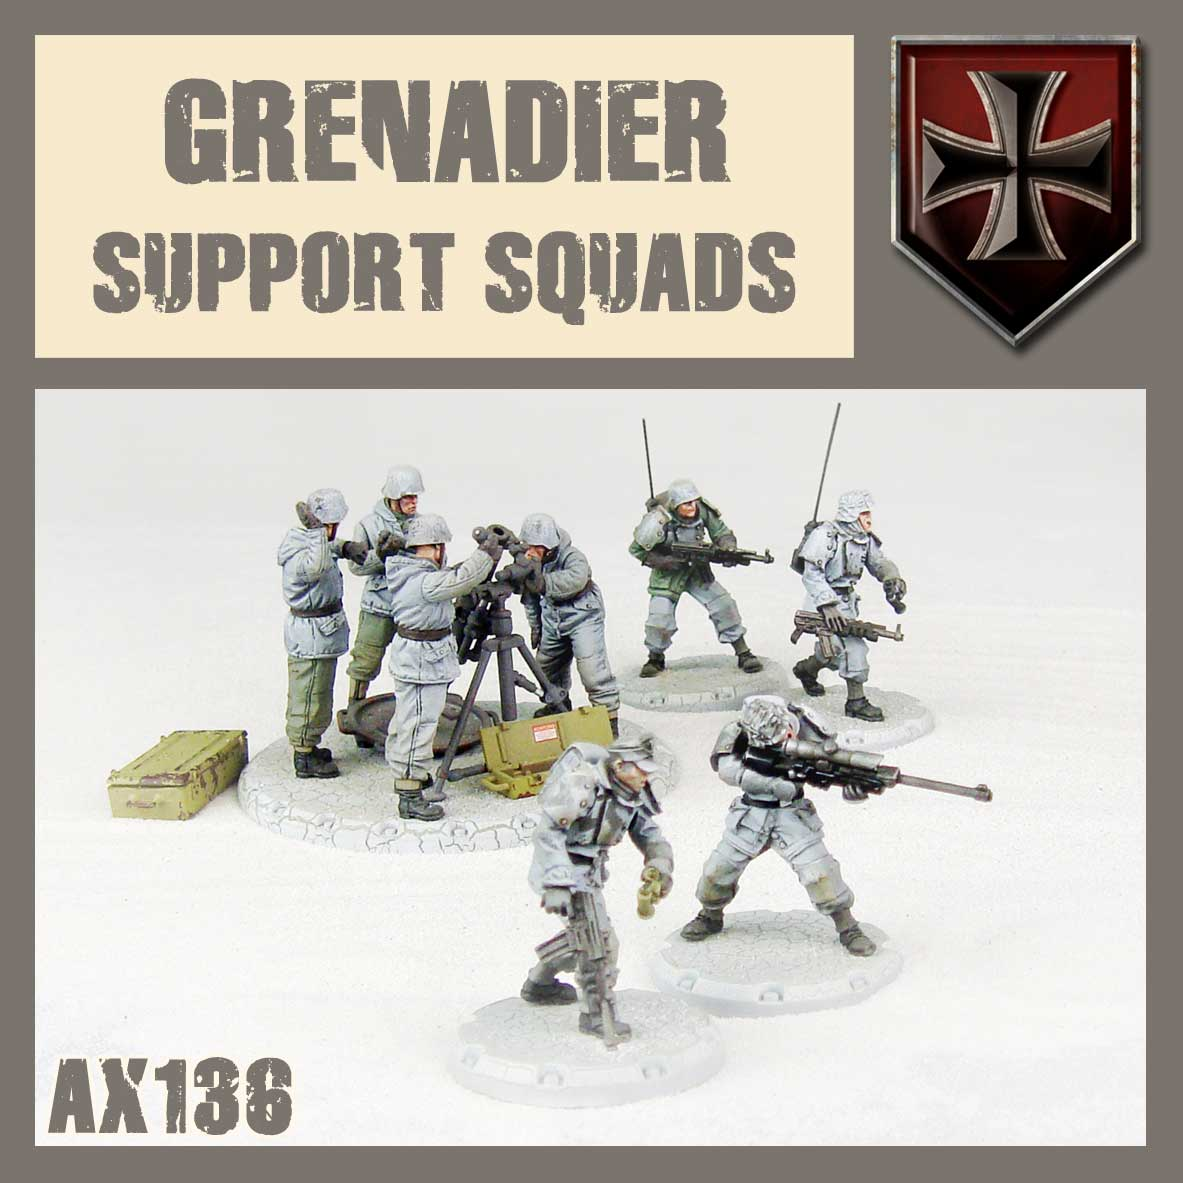 Grenadier Support Squads